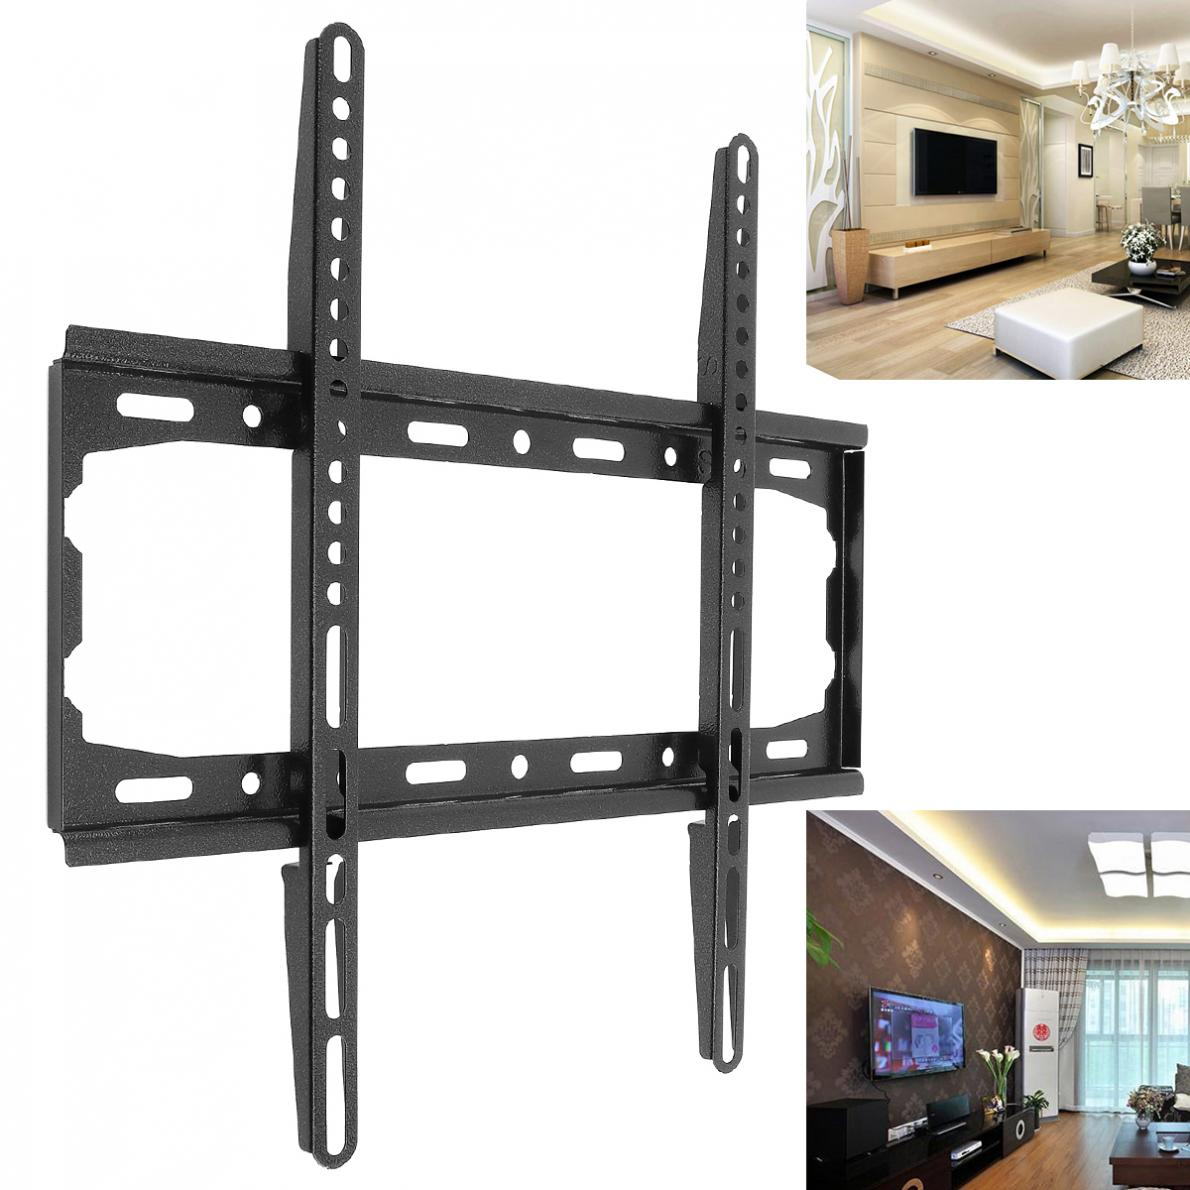 Universal 45KG TV Wall Mount Bracket Fixed Flat Panel TV Frame for 26-55 Inch LCD LED Monitor Flat Panel TV Stand Holder